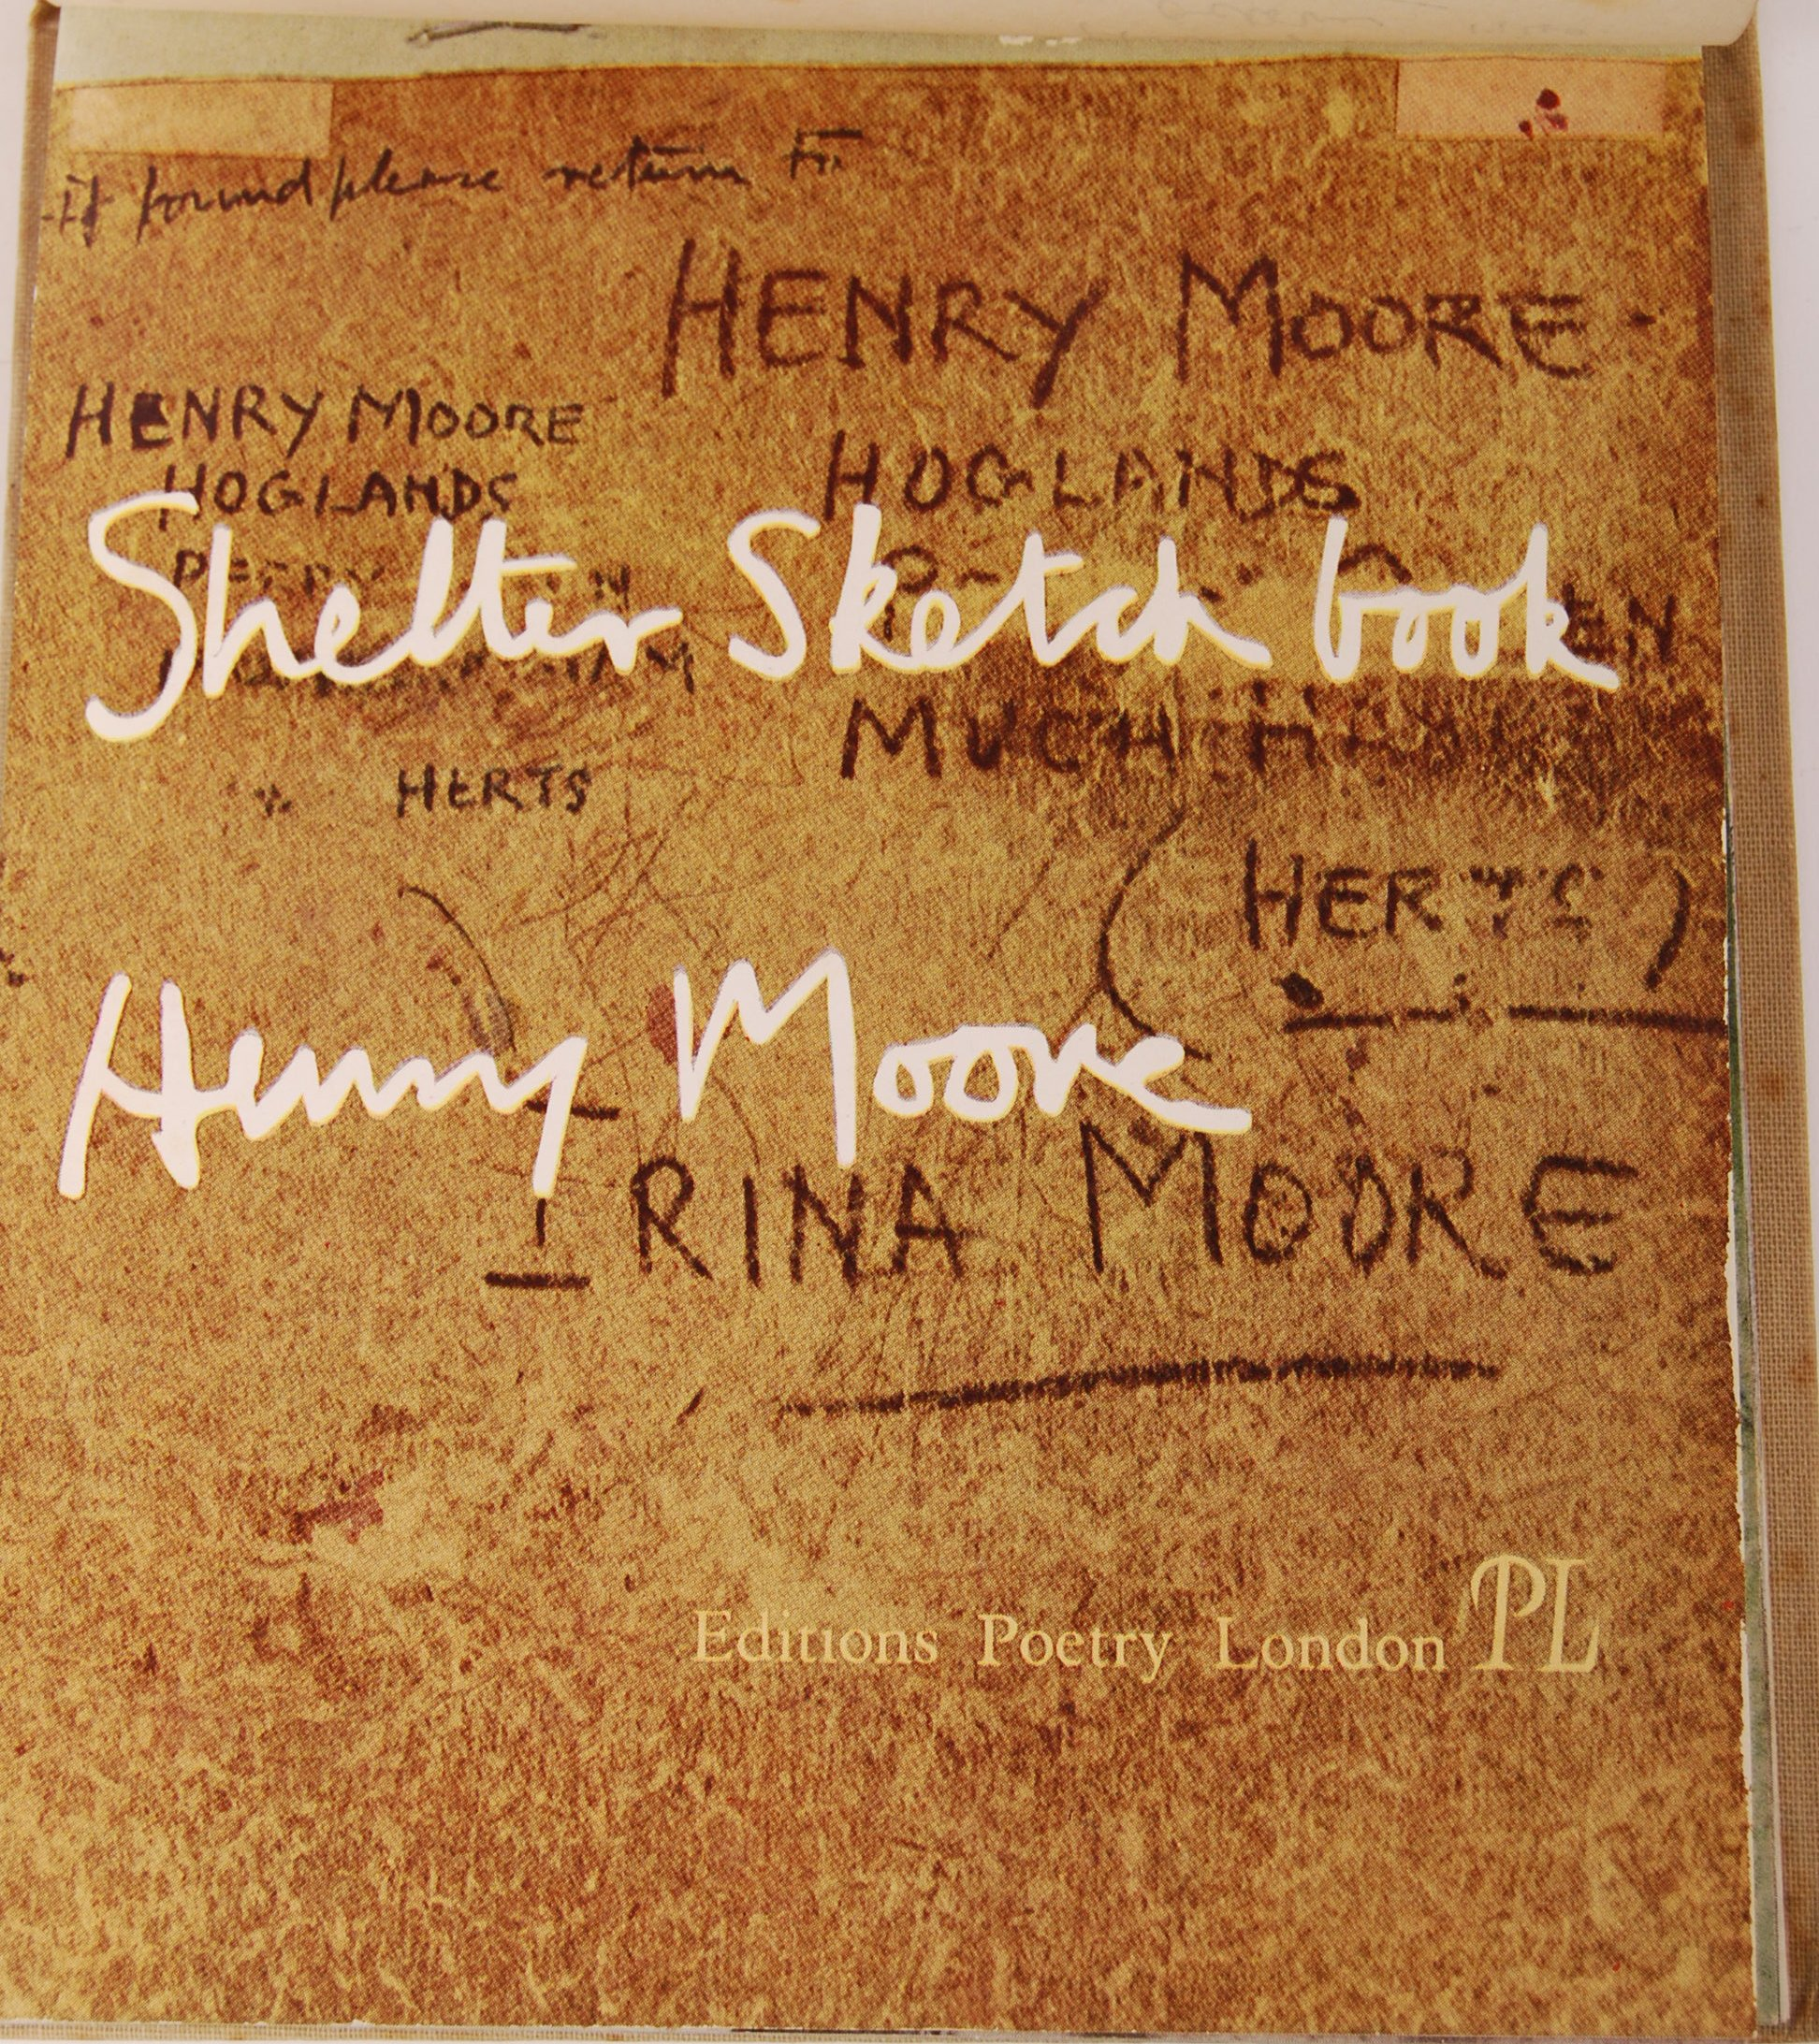 HENRY MOORE WWII SECOND WORLD WAR SHELTER SKETCH BOOK - Image 3 of 8